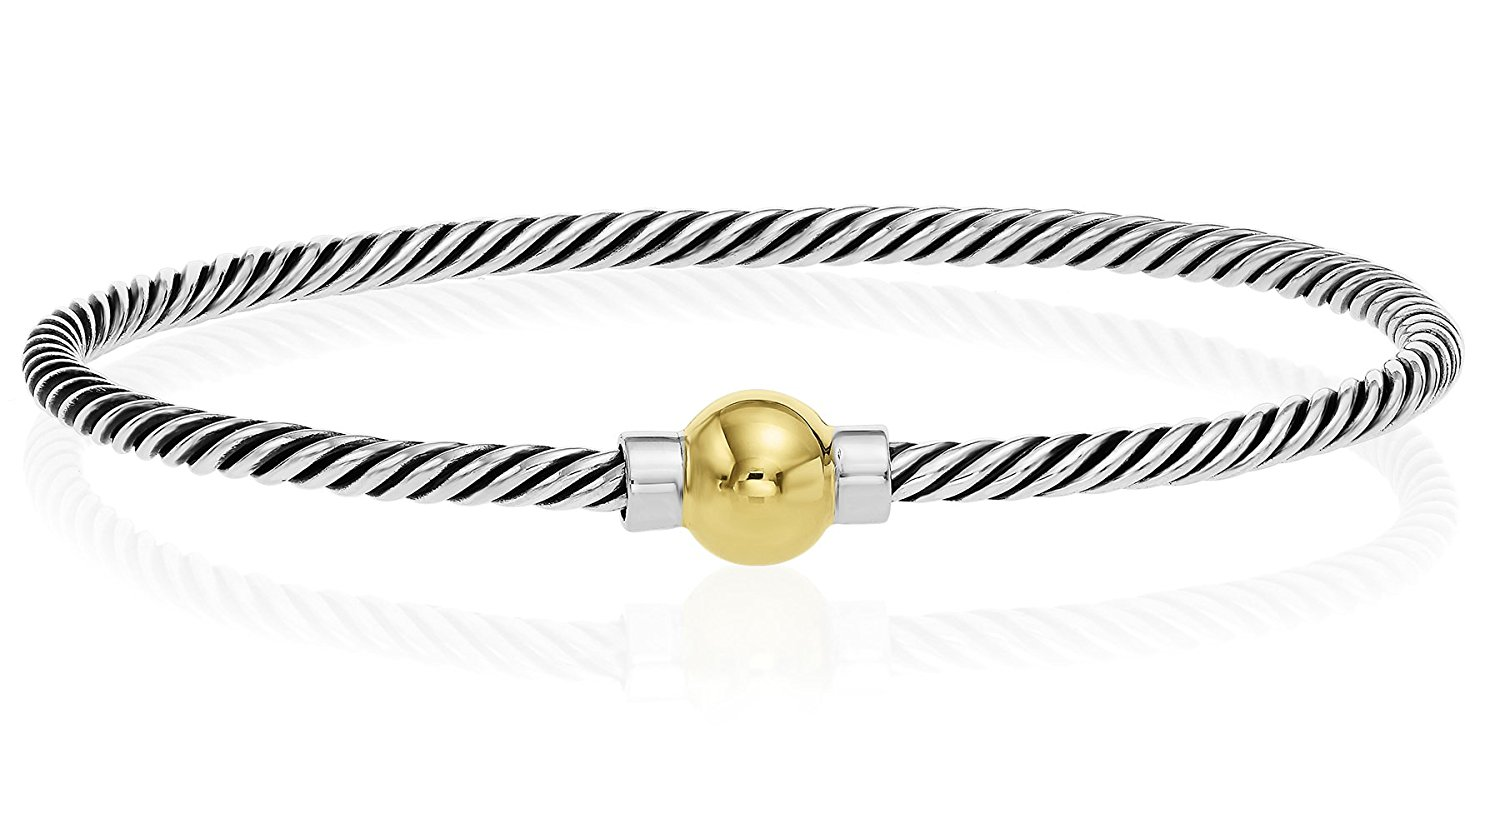 Unique Royal Jewelry 925 Sterling Silver, 14k solid Gold Ball Screw Twisted Bangle Bracelet with Black Rhodiumy